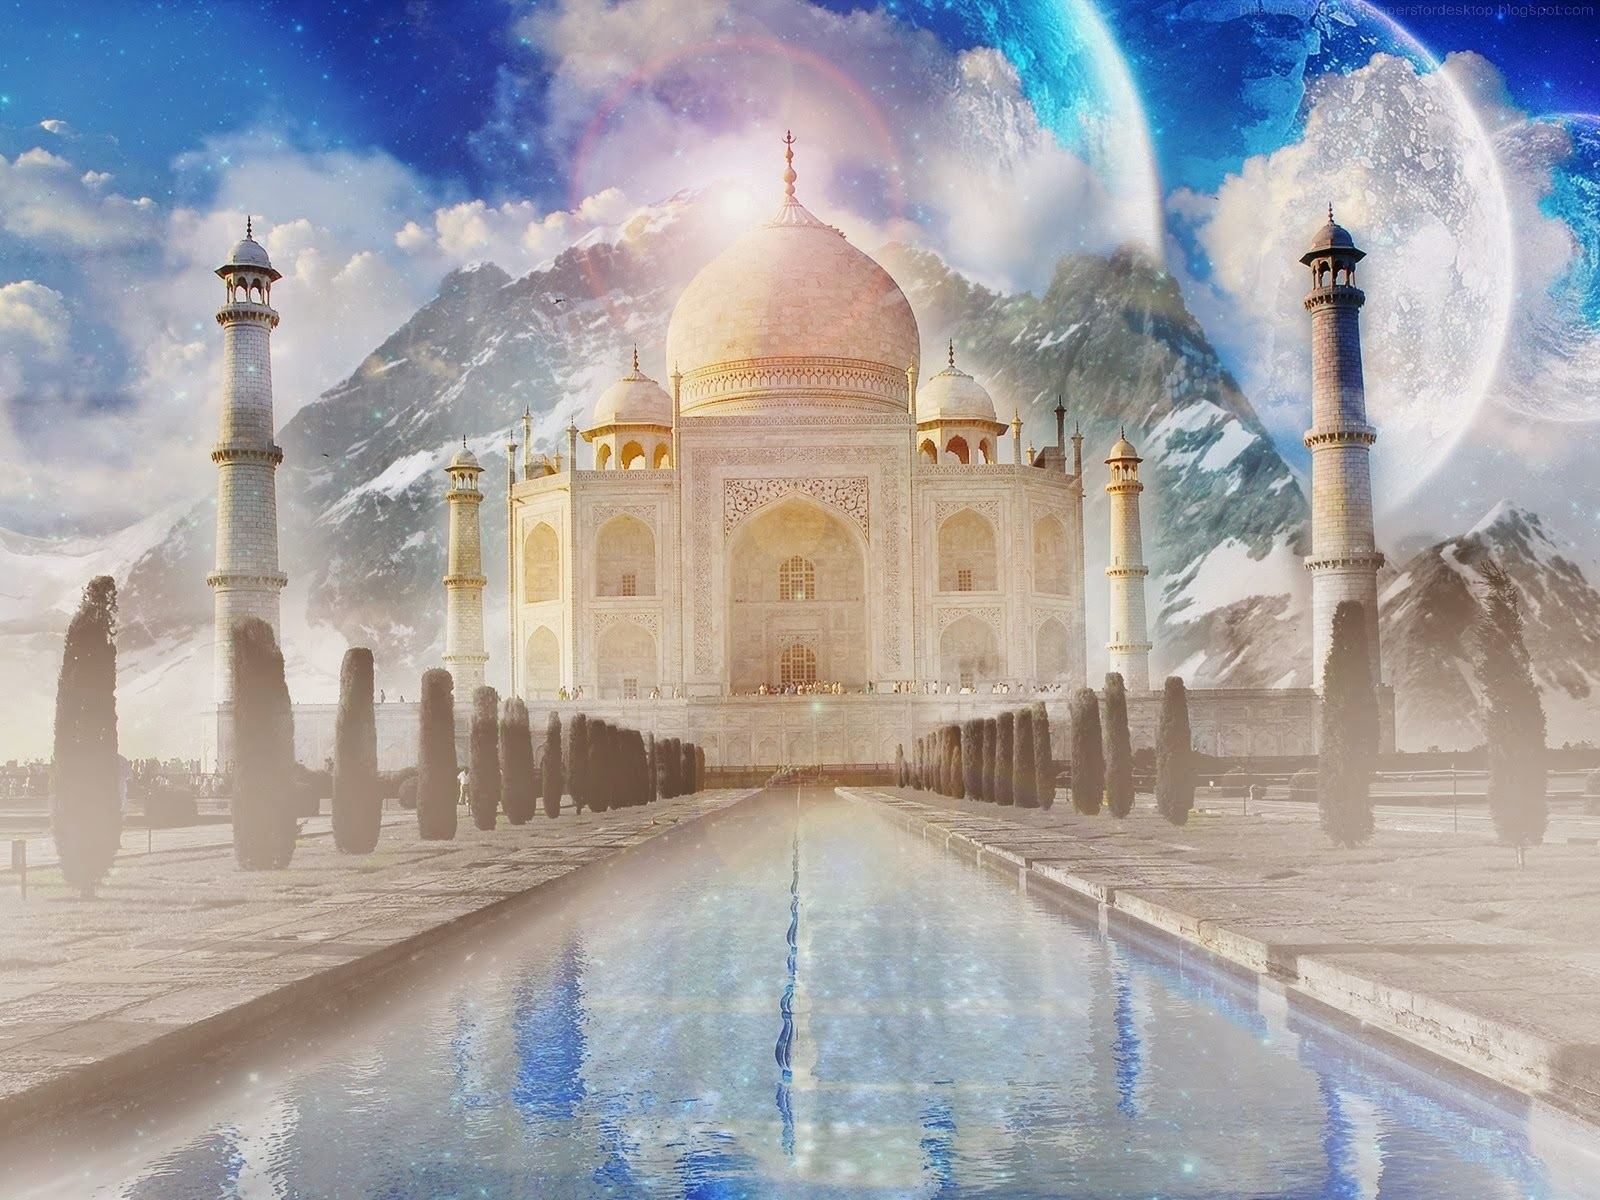 3 Tamil Movie Wallpapers With Quotes Download Taj Mahal At Night Wallpaper 3d Gallery